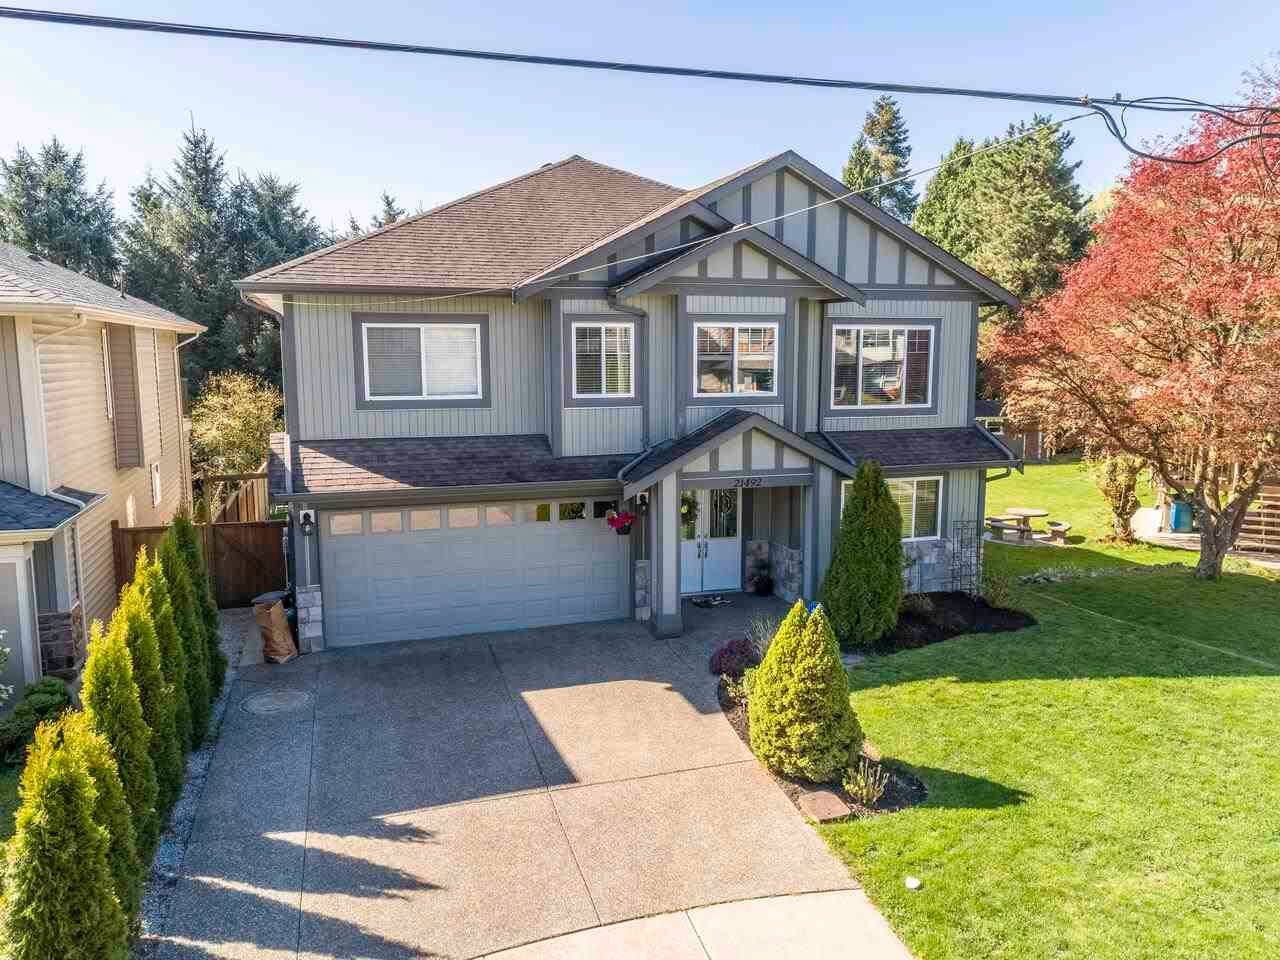 Main Photo: 21492 DONOVAN Avenue in Maple Ridge: West Central House for sale : MLS®# R2598526